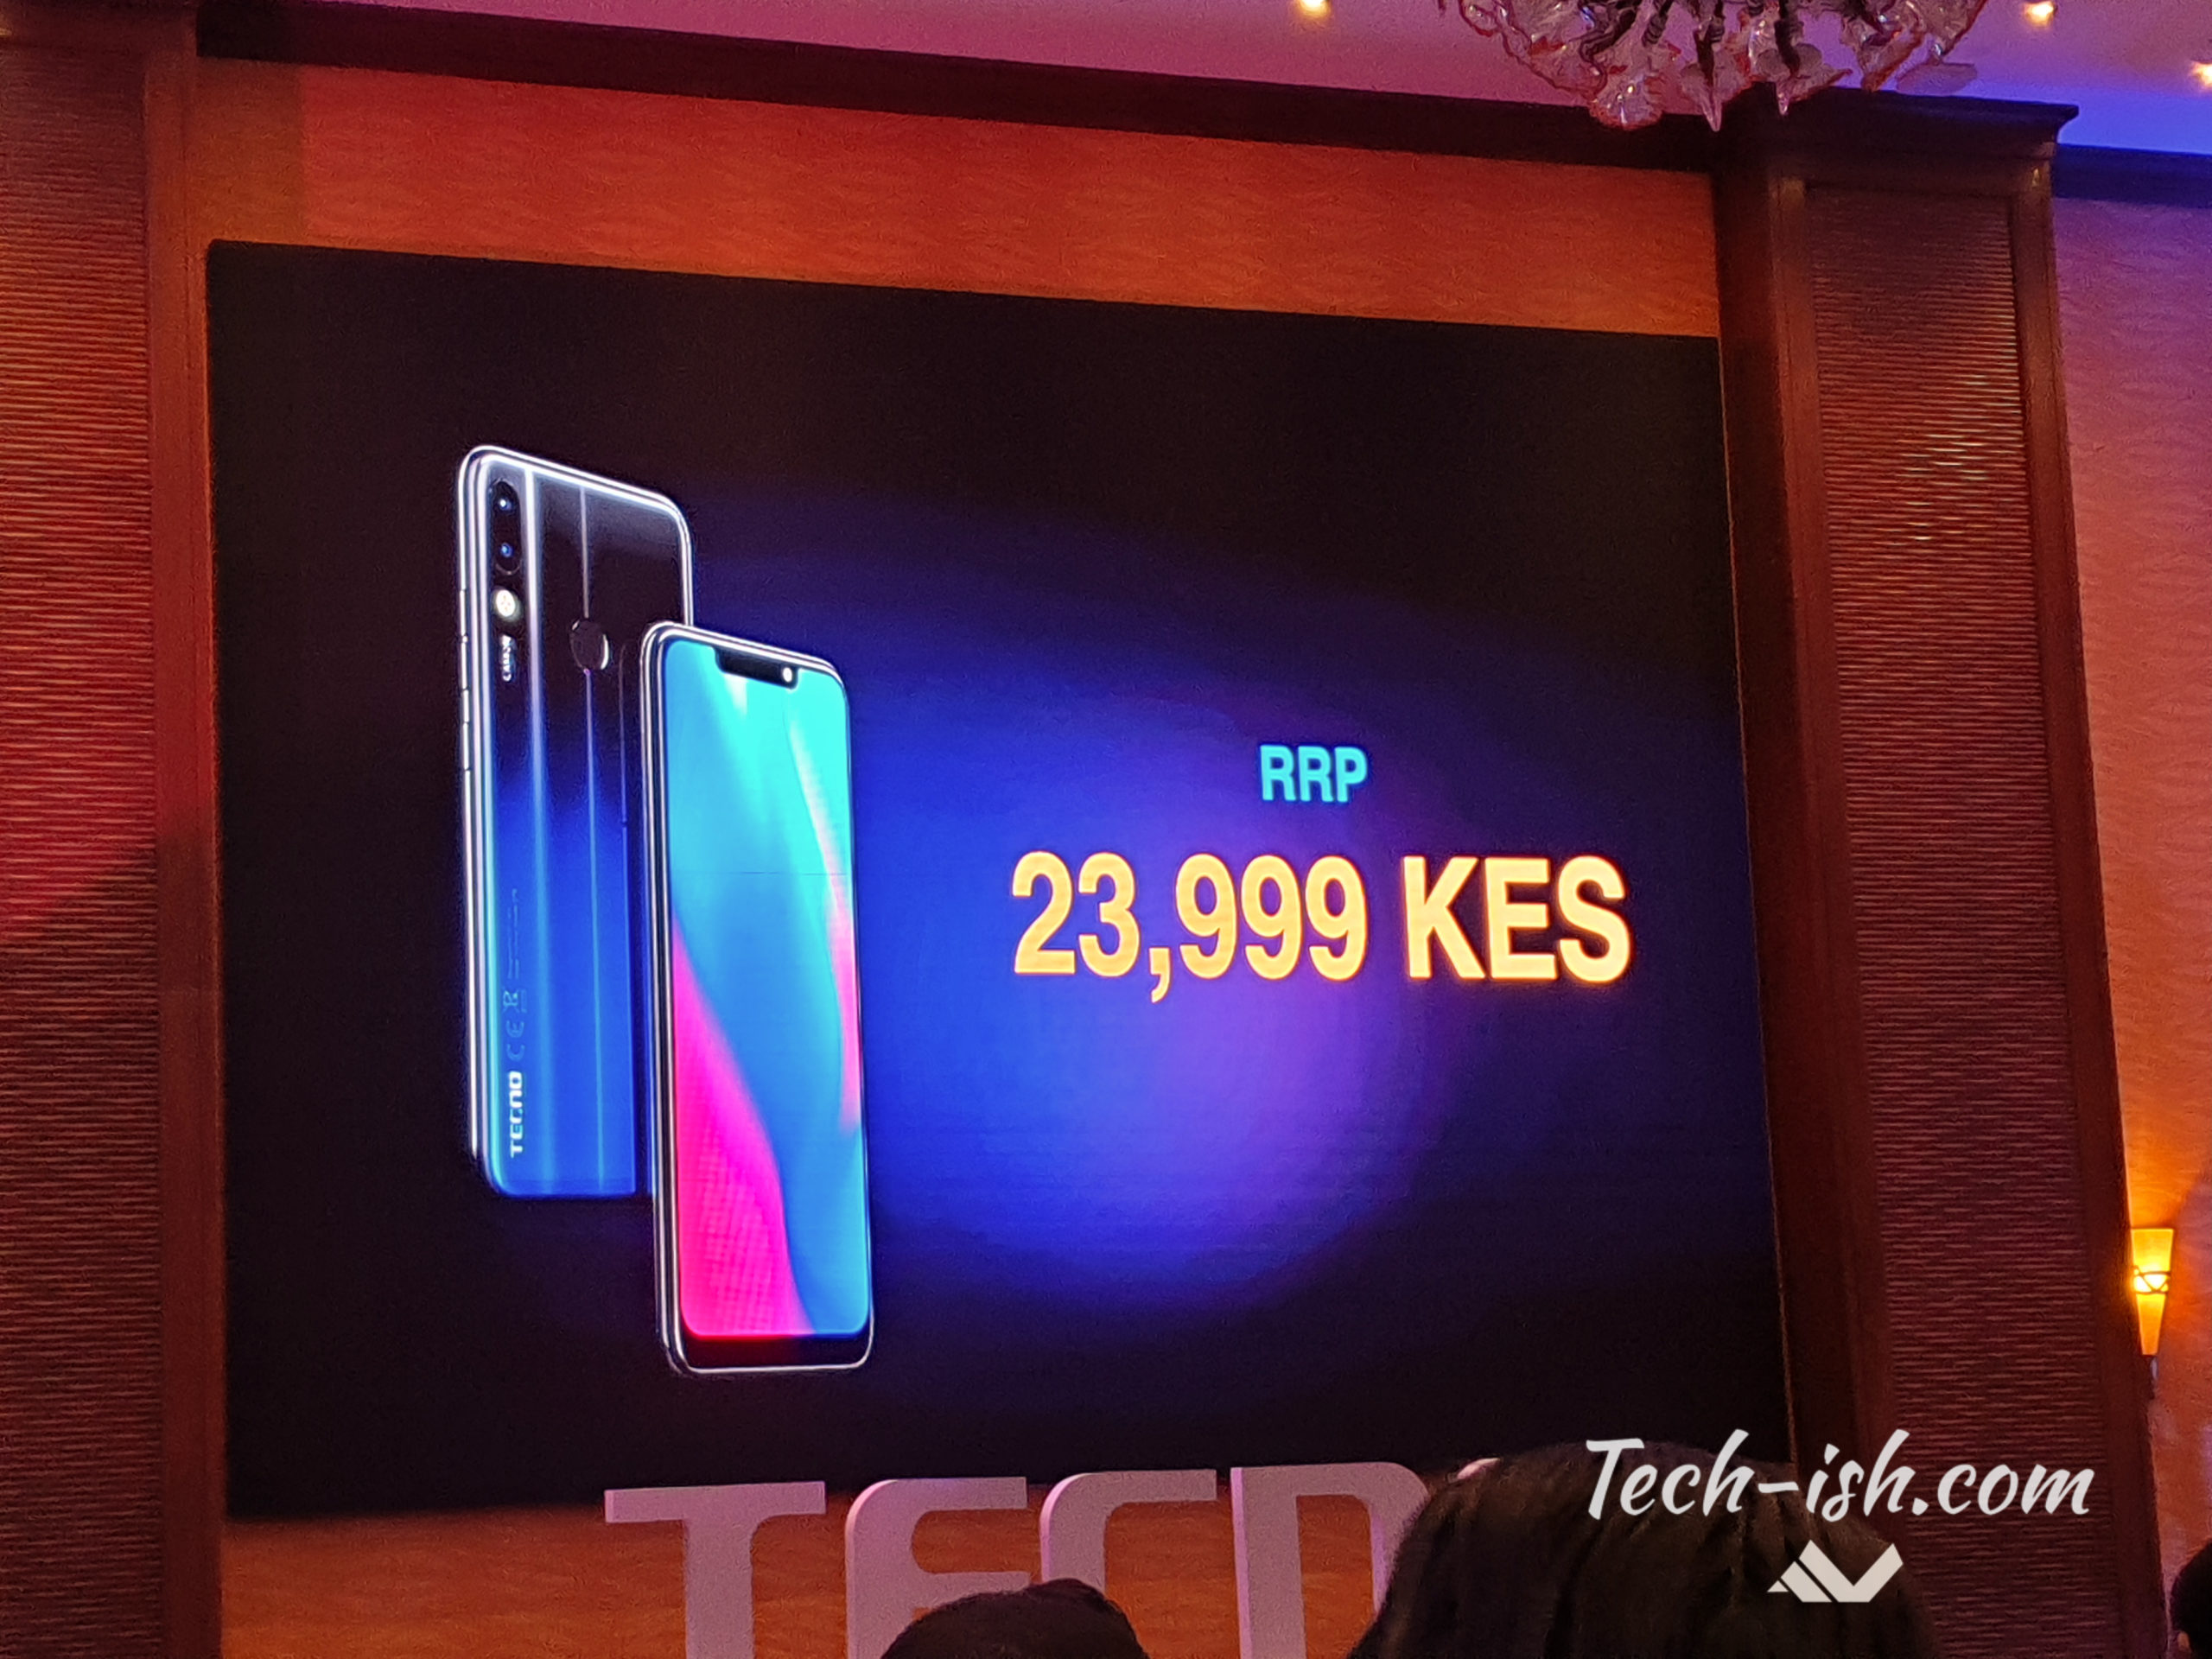 TECNO Camon 11 and Camon 11 Pro Officially launched in Kenya